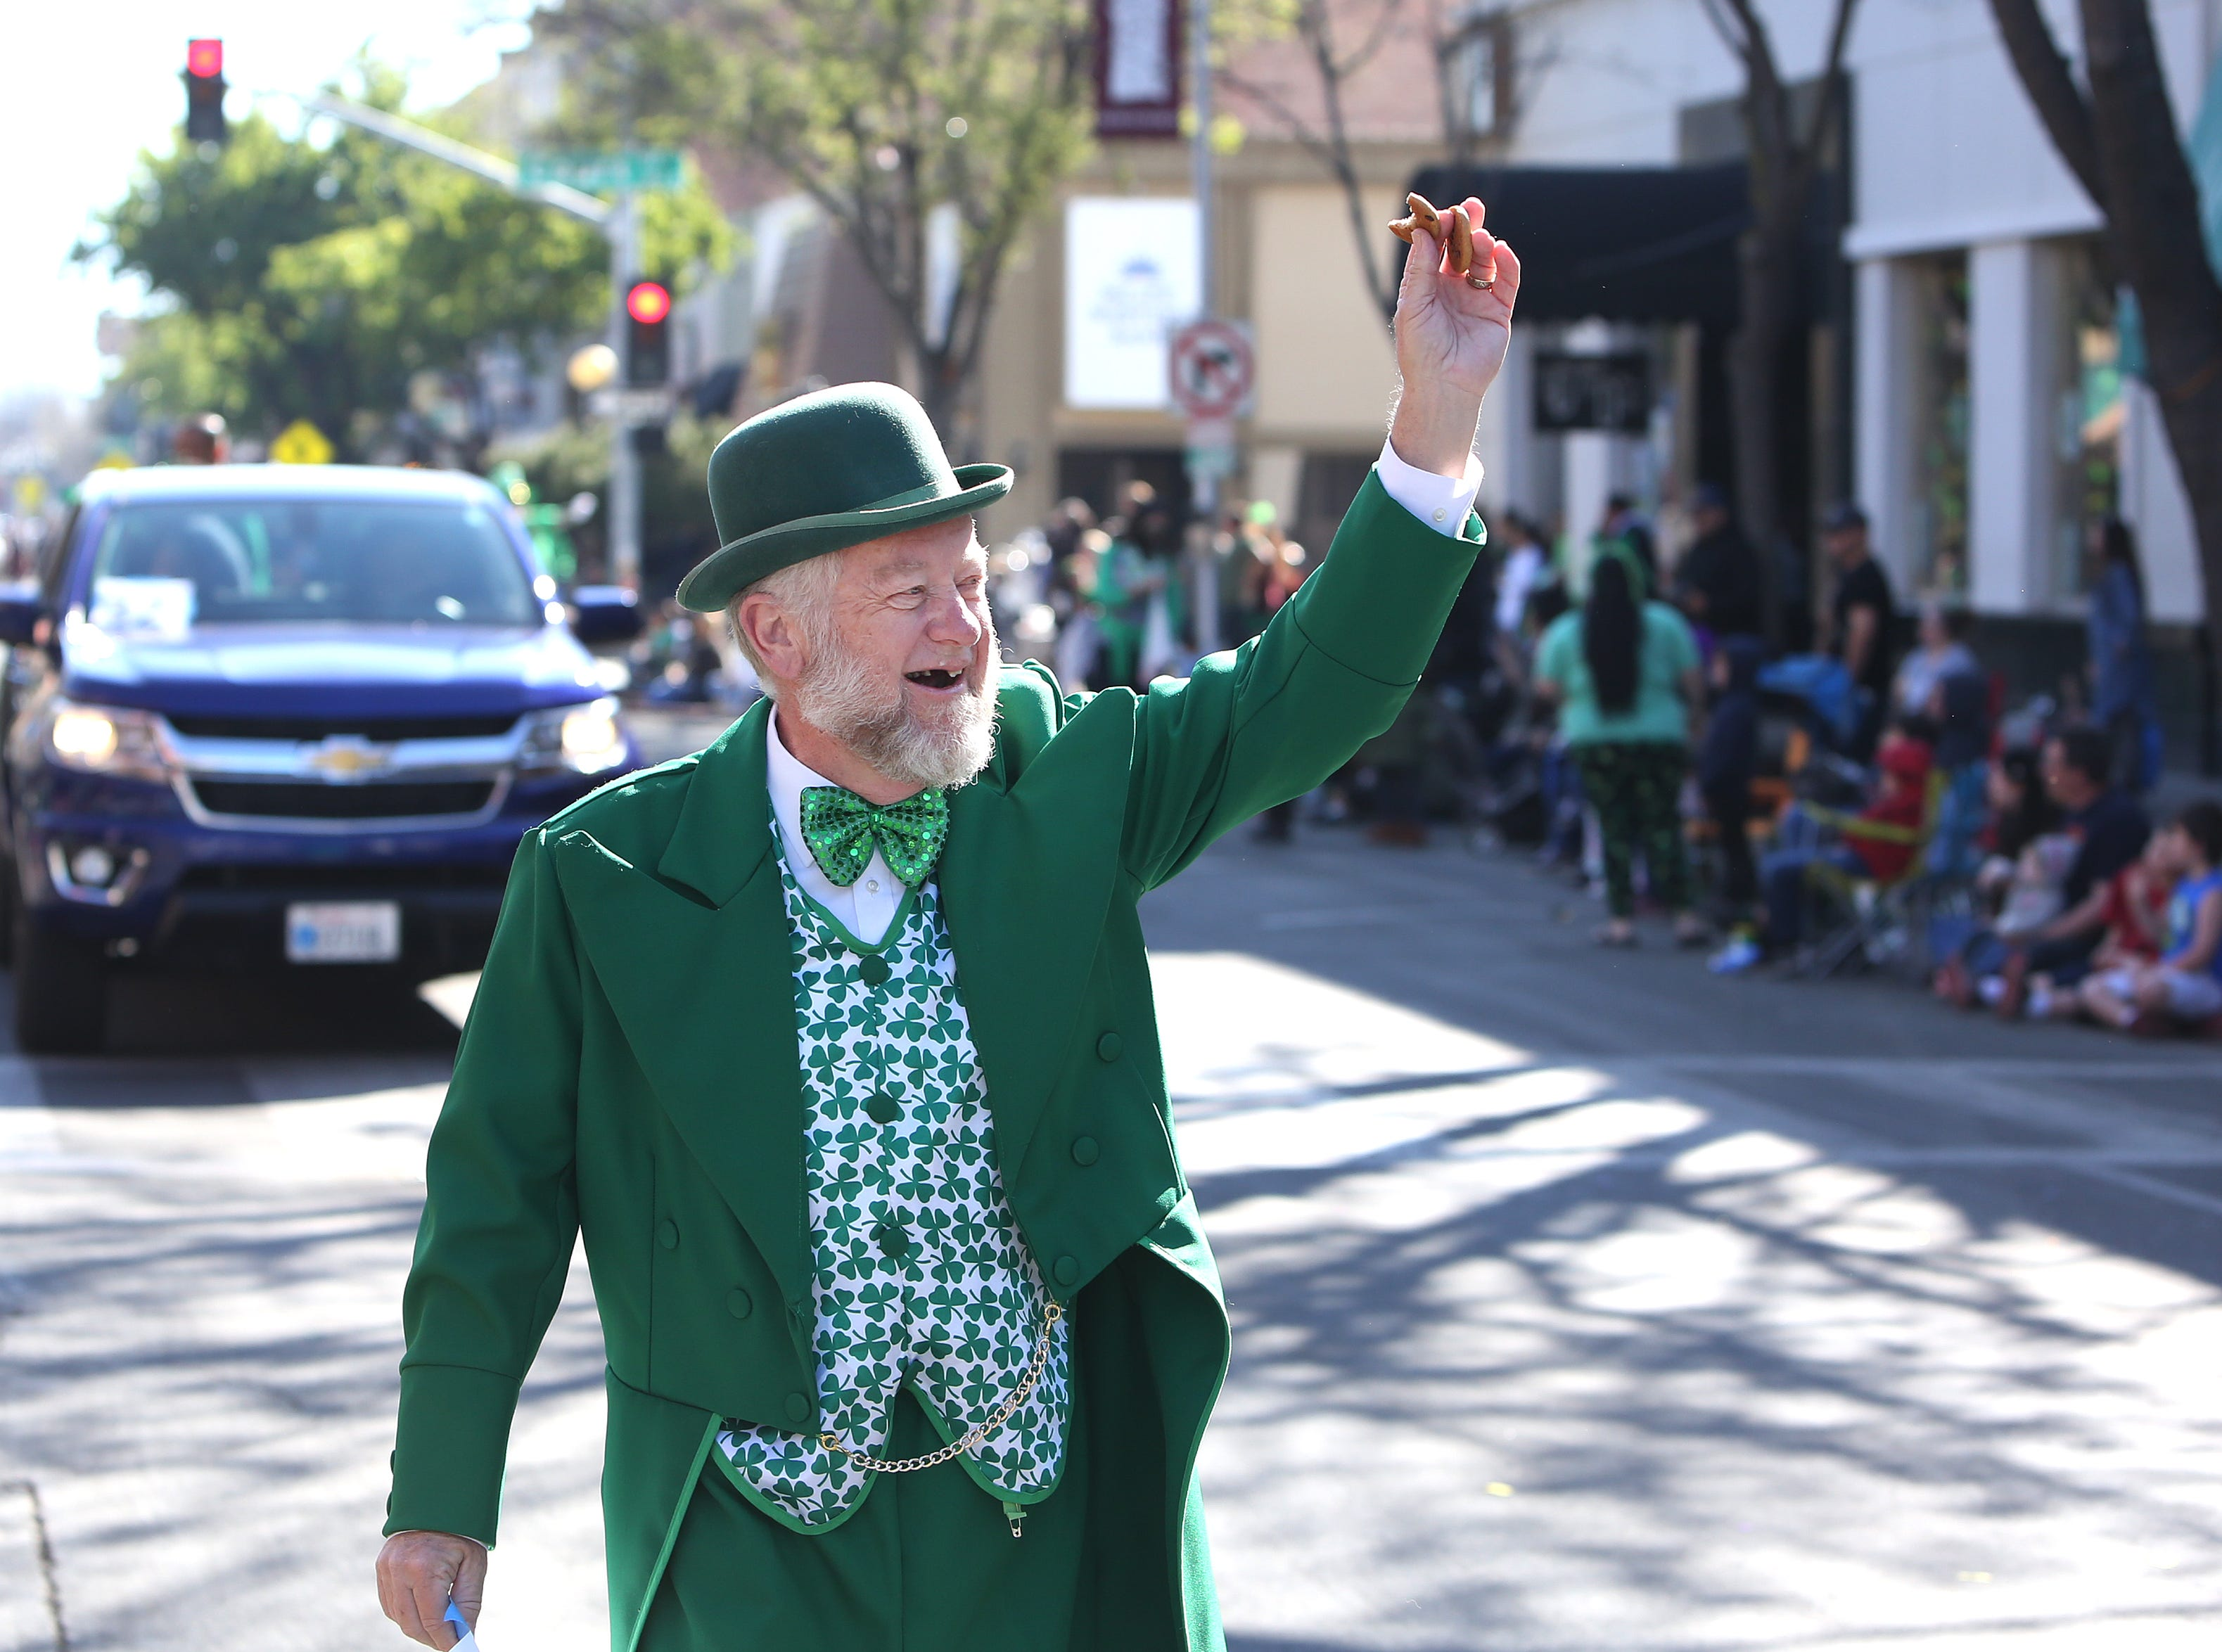 Bill Bates shows his green attire off at this year's St. Patrick's Day parade rolling through Main Street Saturday, March 16, 2019 in Visalia, Calif.